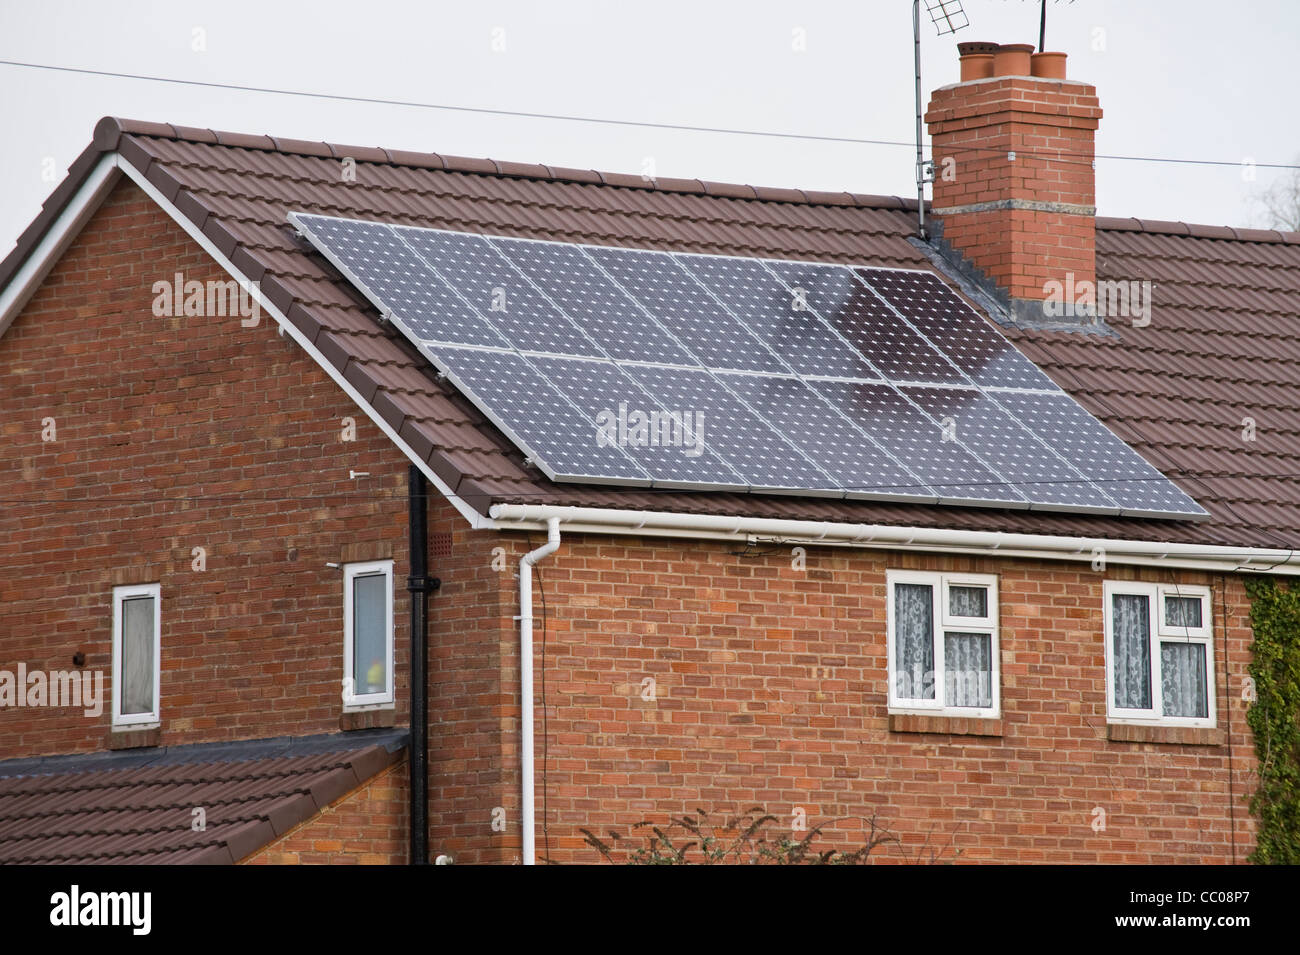 Solar panels fitted to roof of rural modern semi detached family house in Winforton Herefordshire England UK - Stock Image